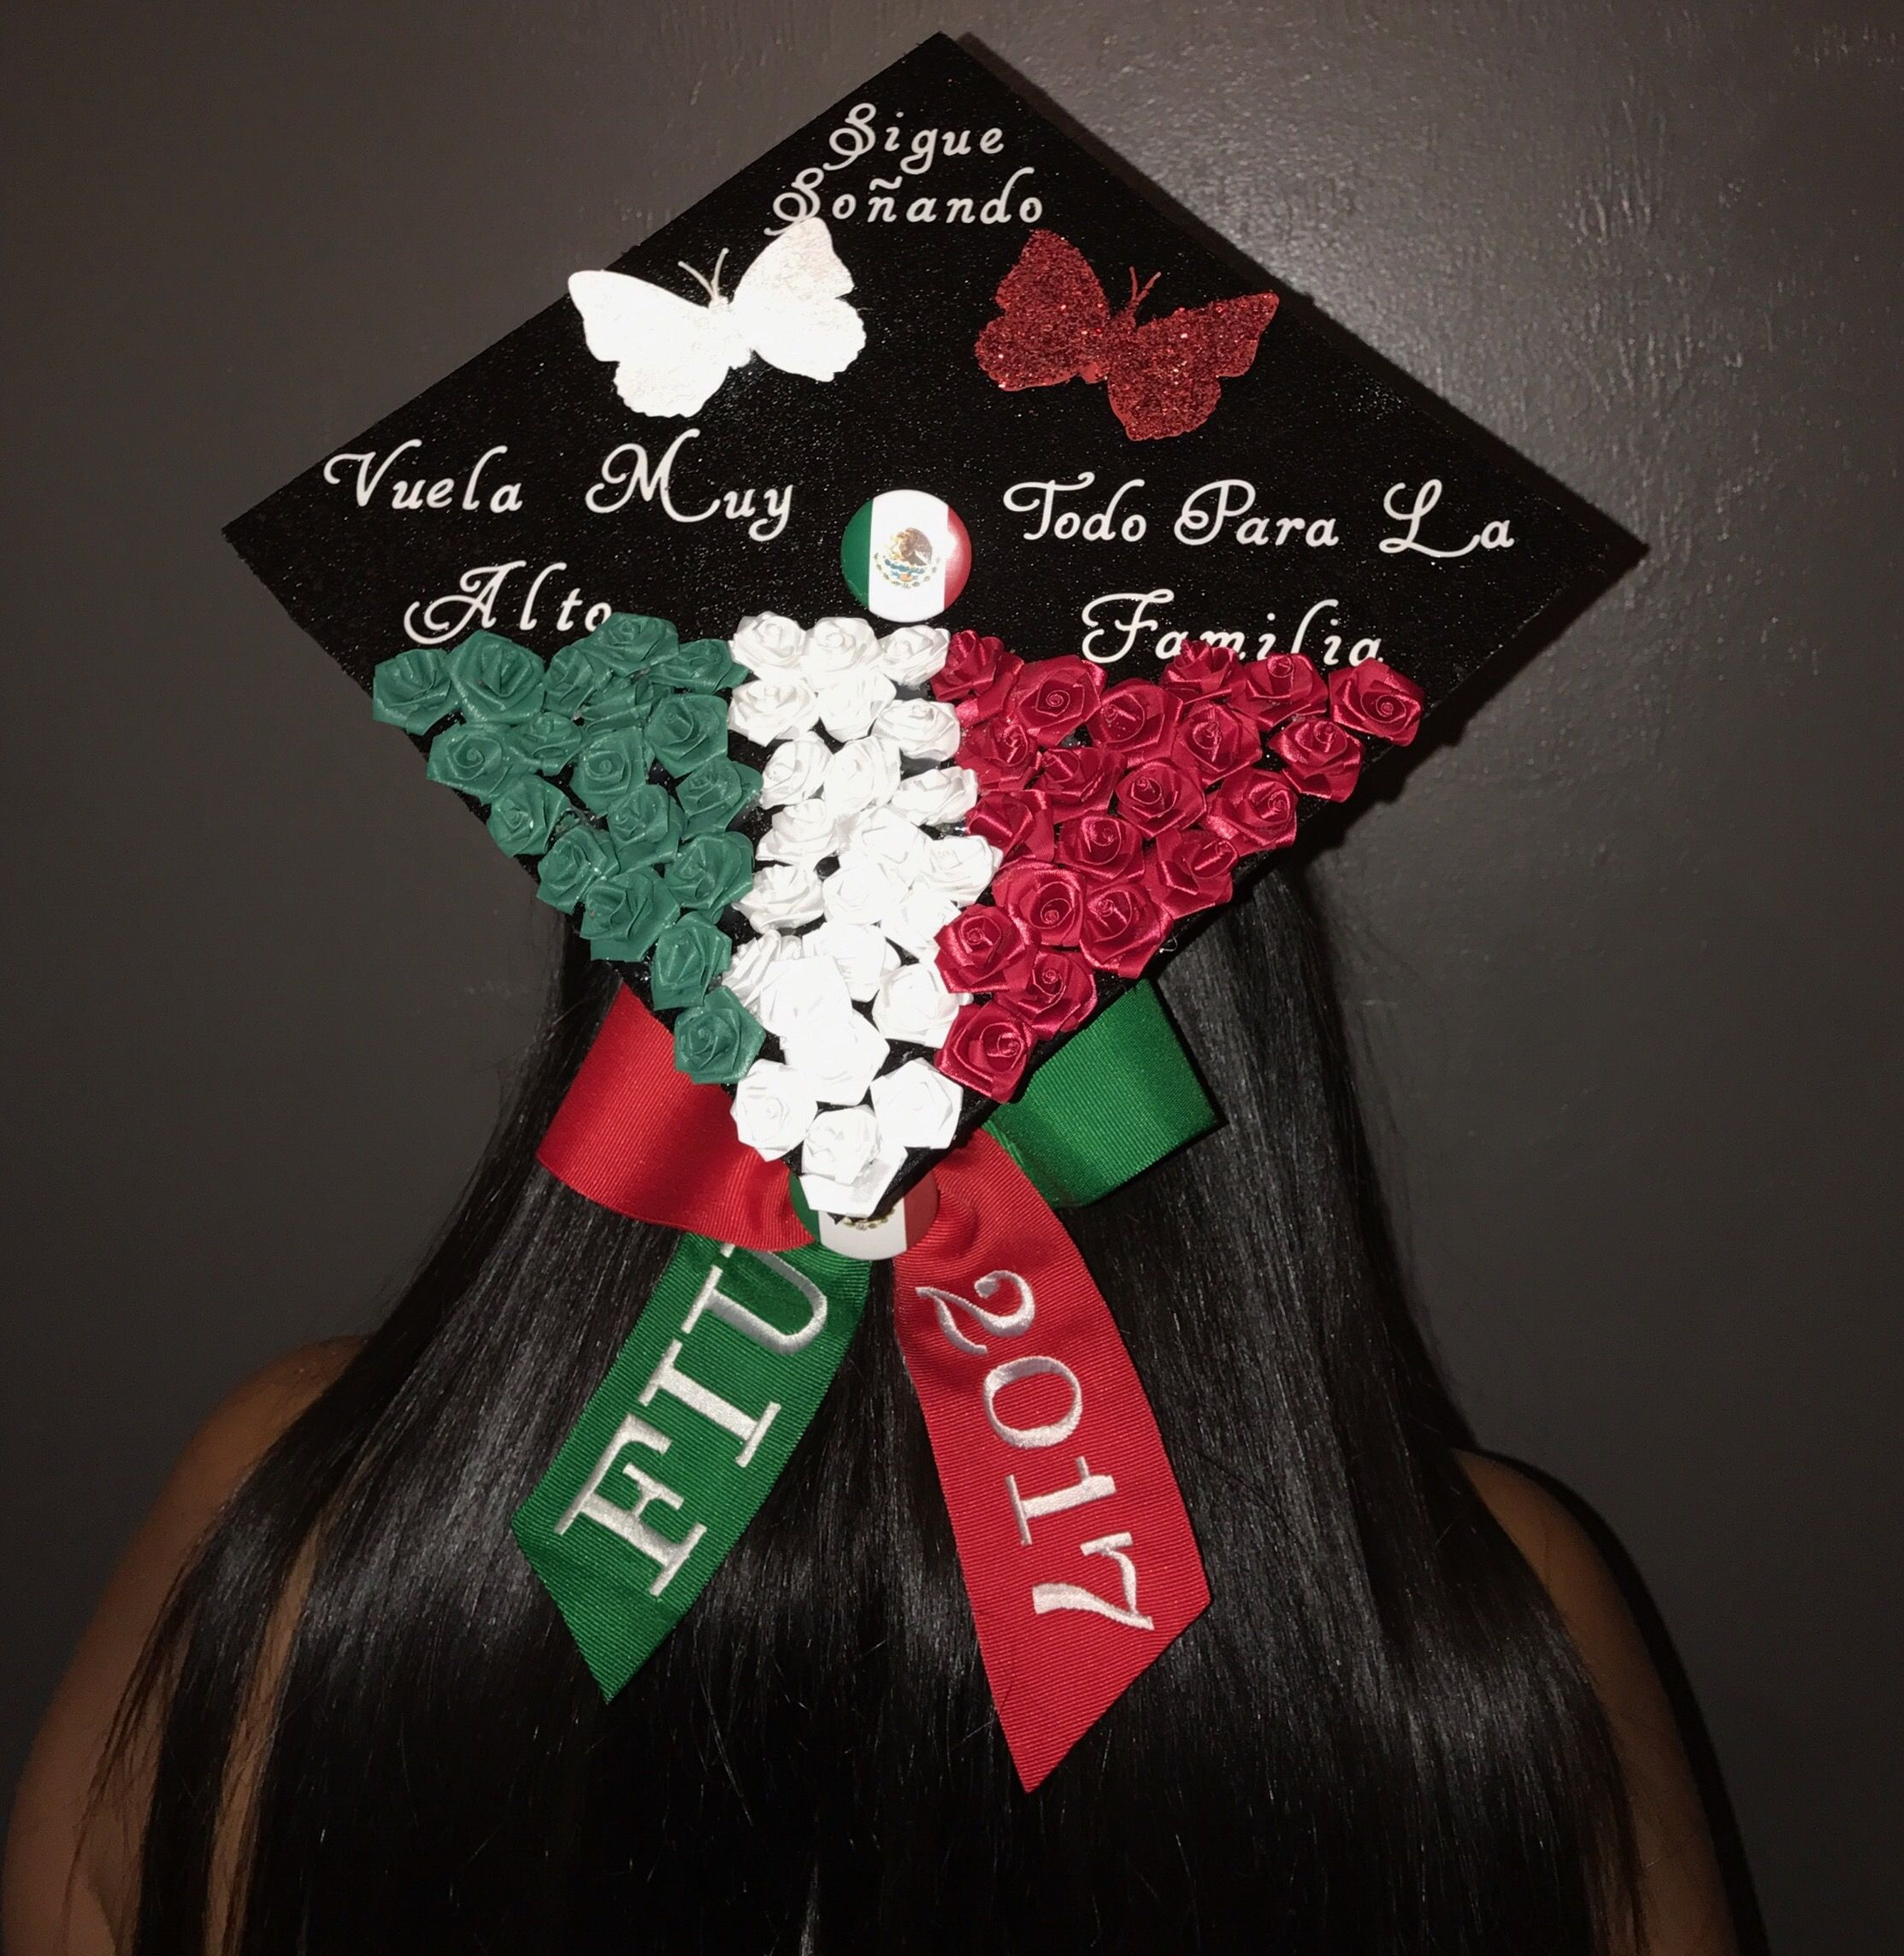 Graduation cap graduation cap mexican fun crafts graduation